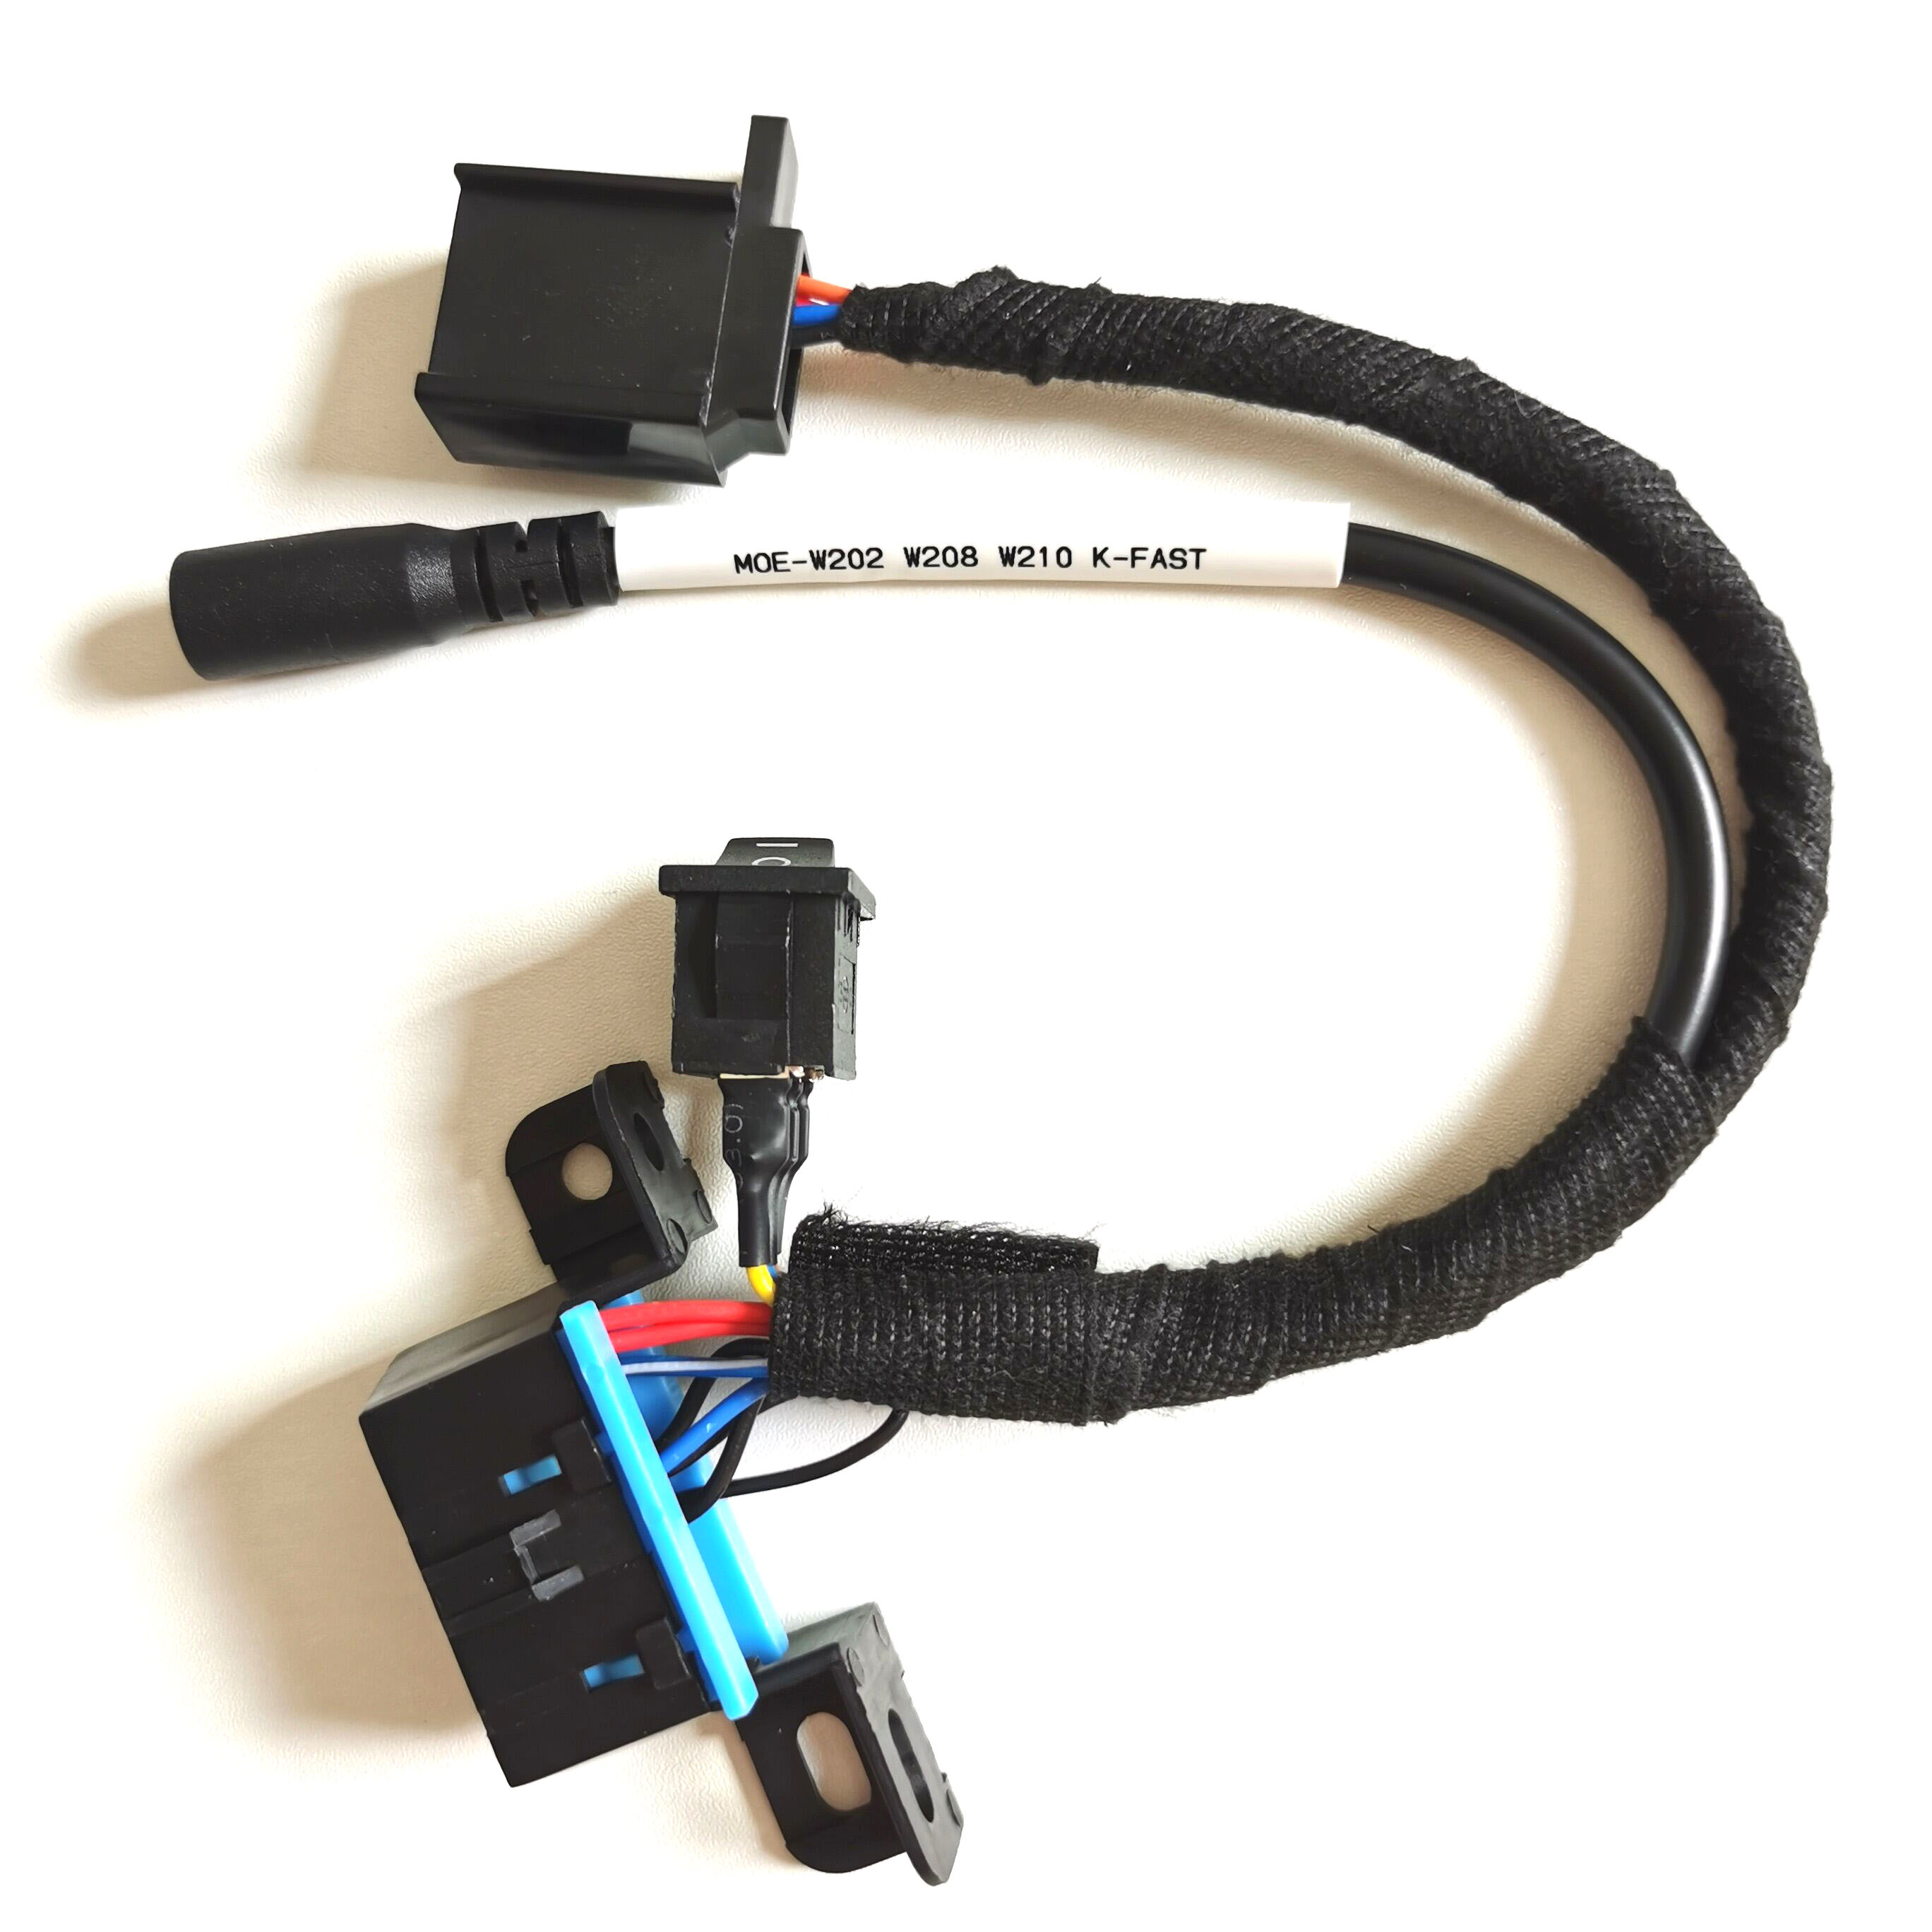 MOE-W210 BENZ EZS Cable for Mercedes Benz W210 W202 W208